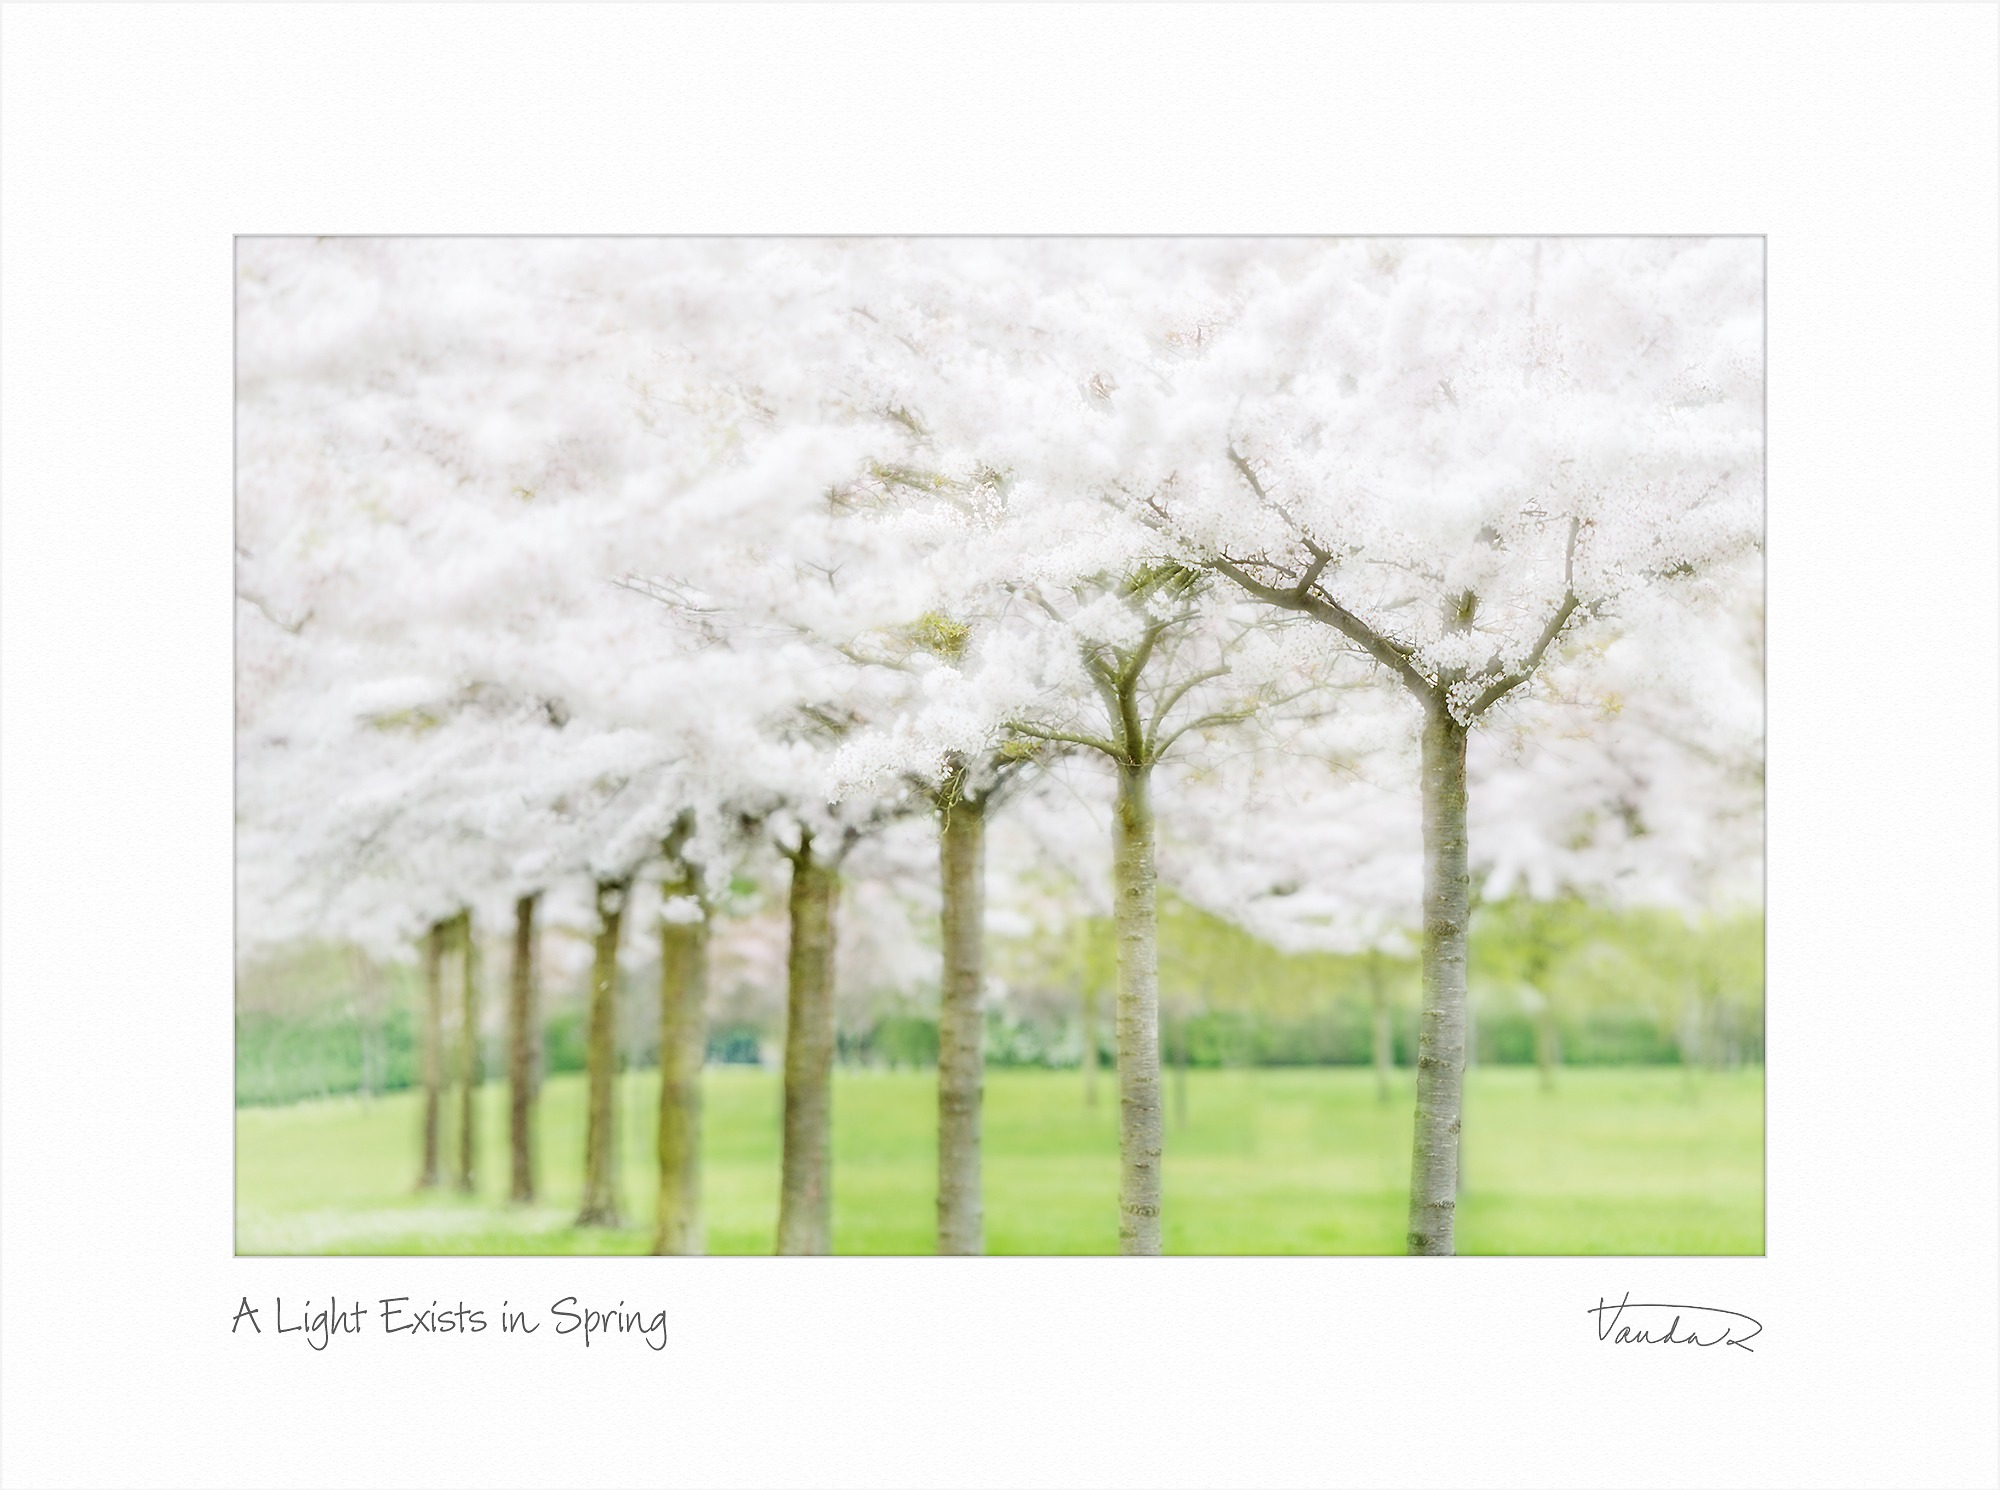 A Light Exists in Spring